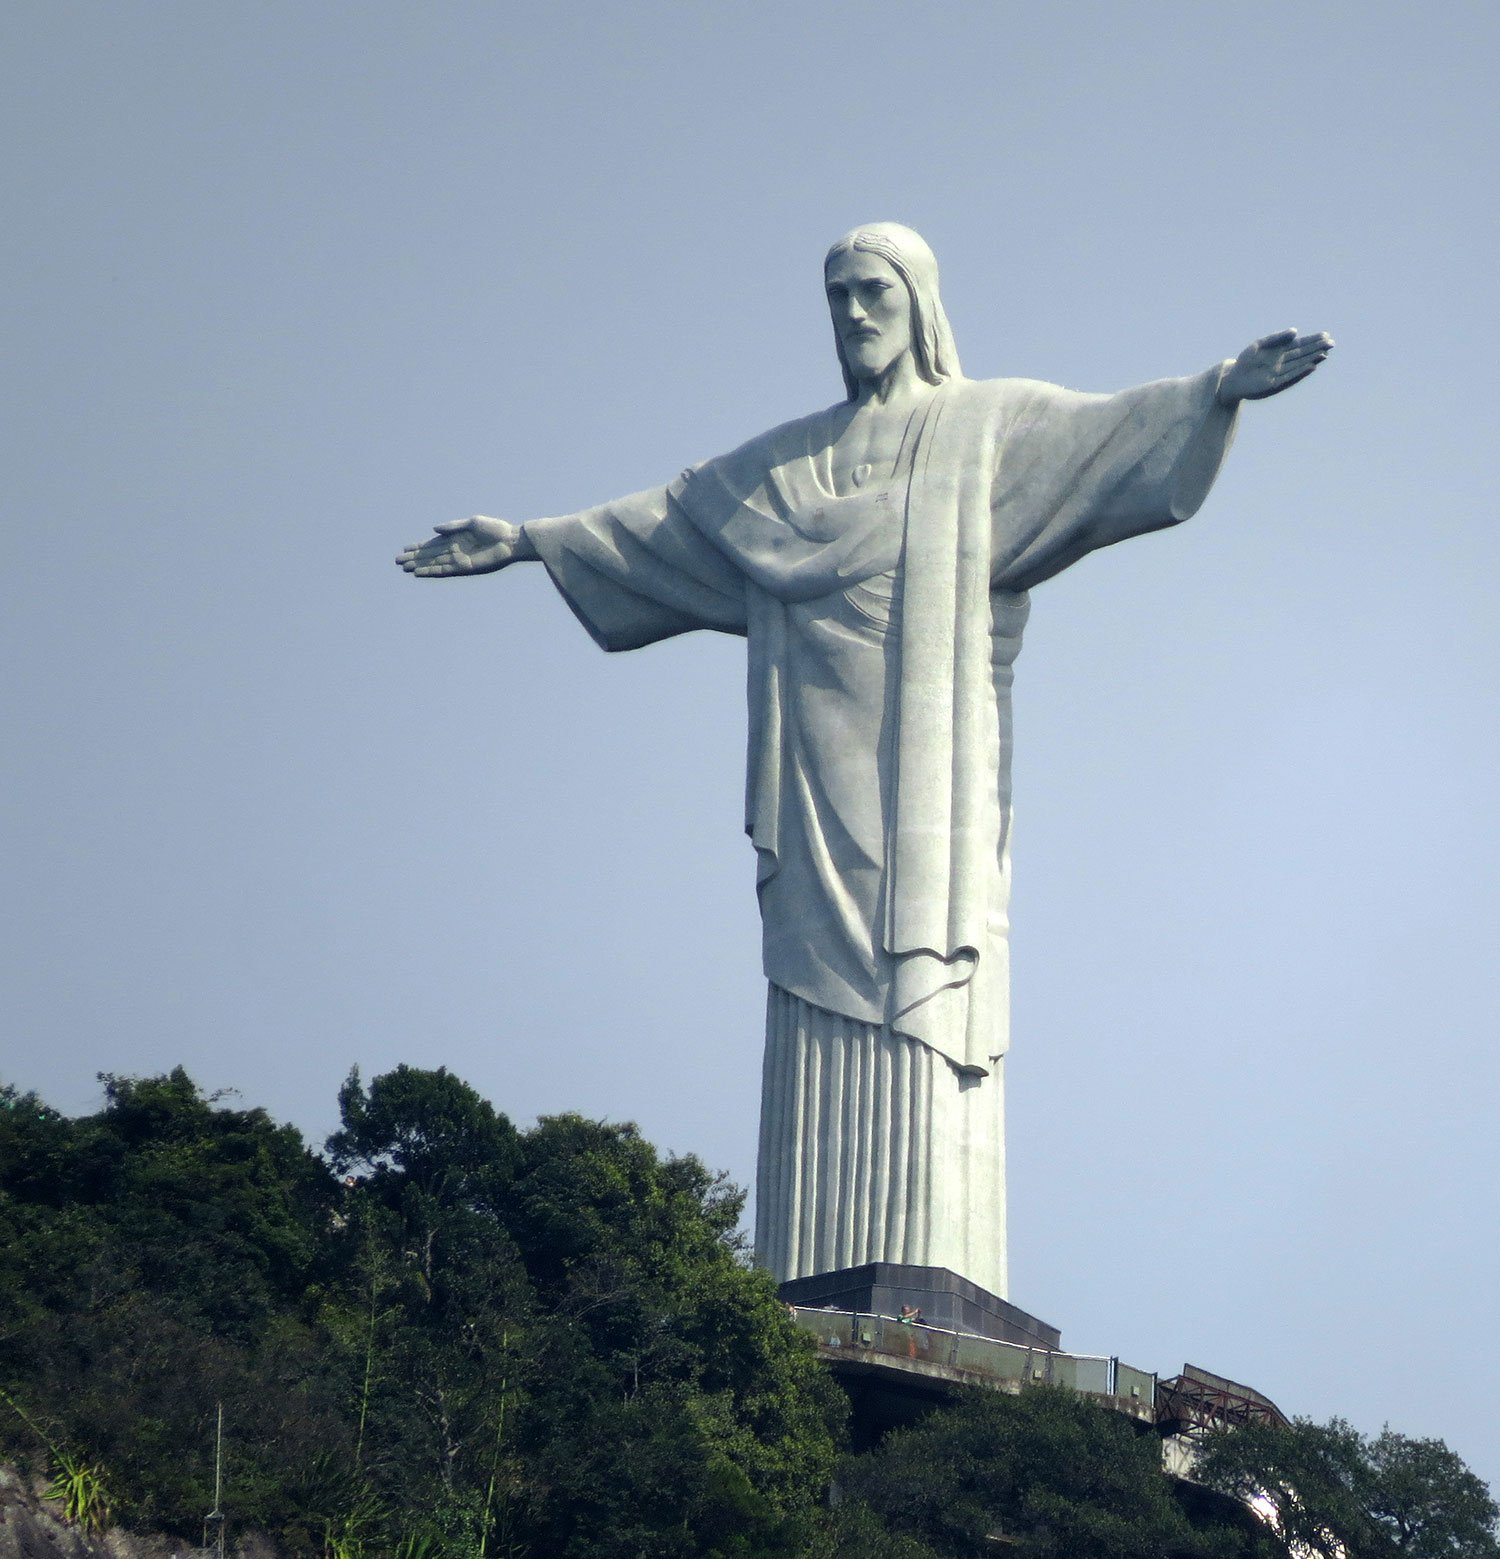 Seven New Wonders of the World - Christ the Redeemer